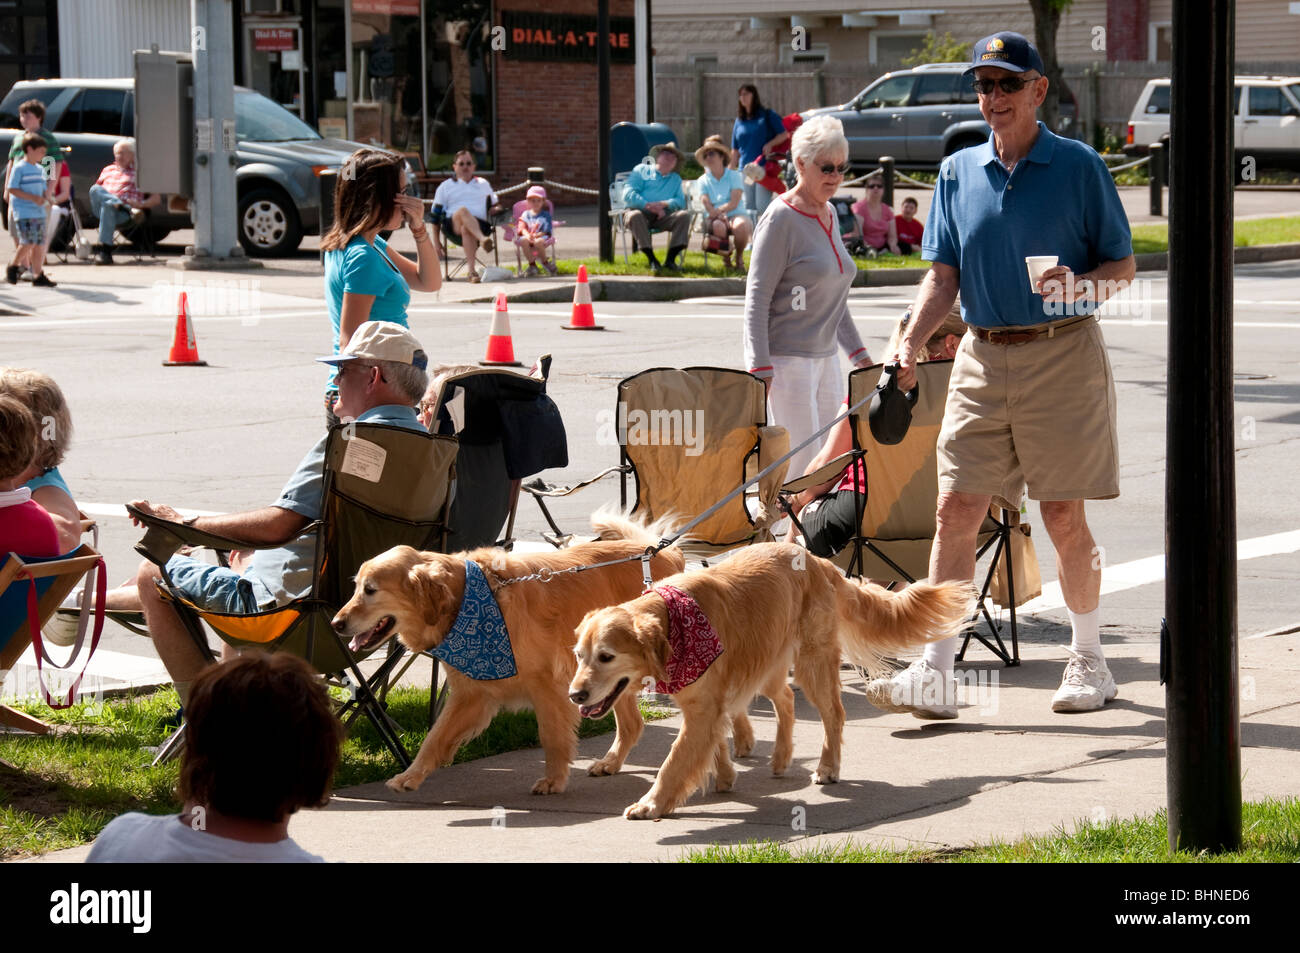 Man walking two Golden Retrievers, 4th of July Parade. - Stock Image